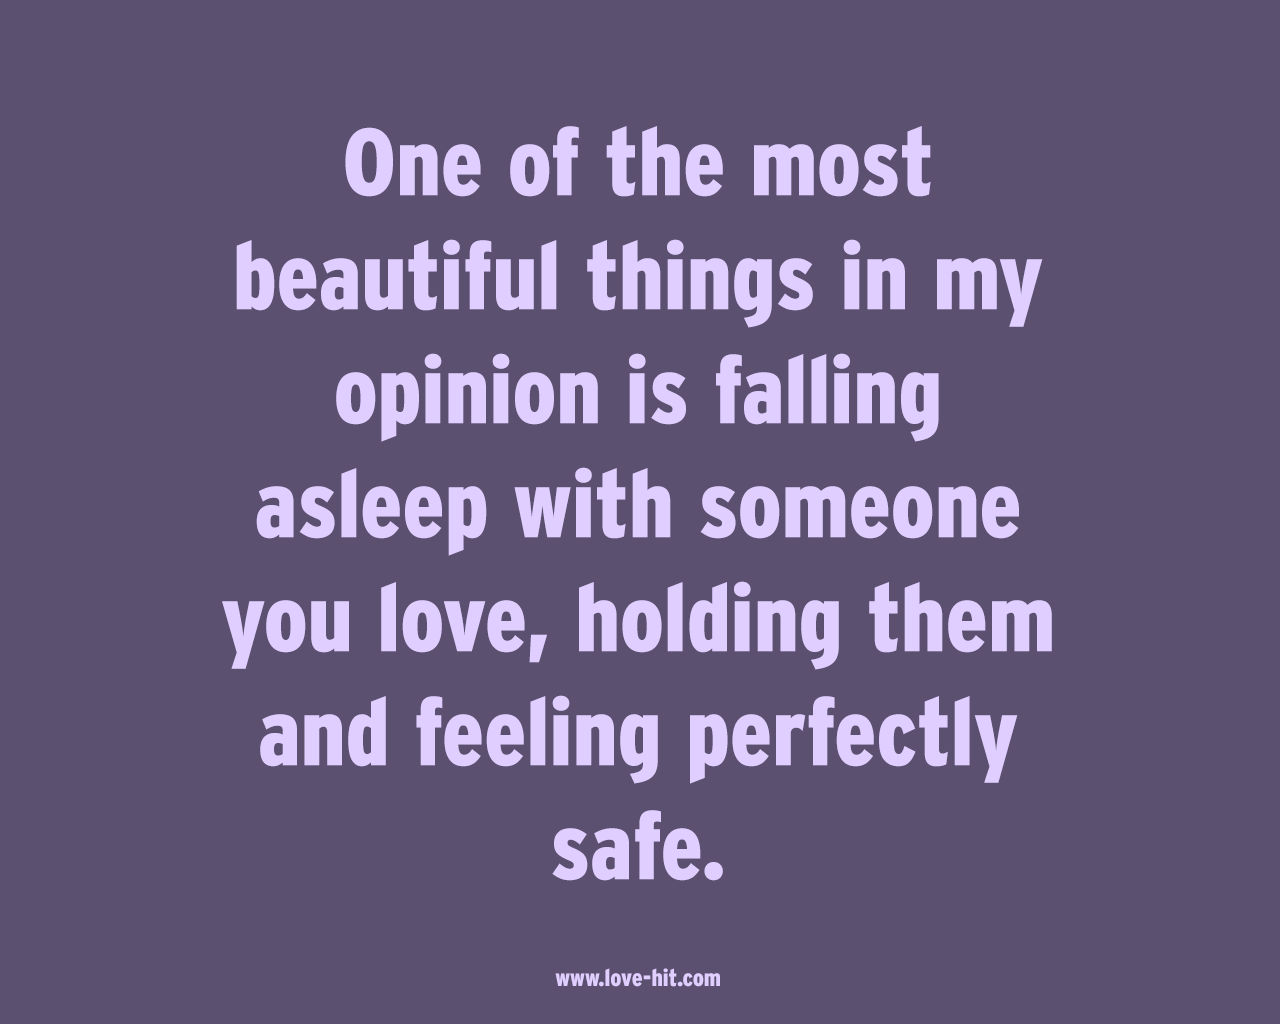 One of the most beautiful things in my opinion is falling asleep with someone you love, holding them and feeling perfectly safe